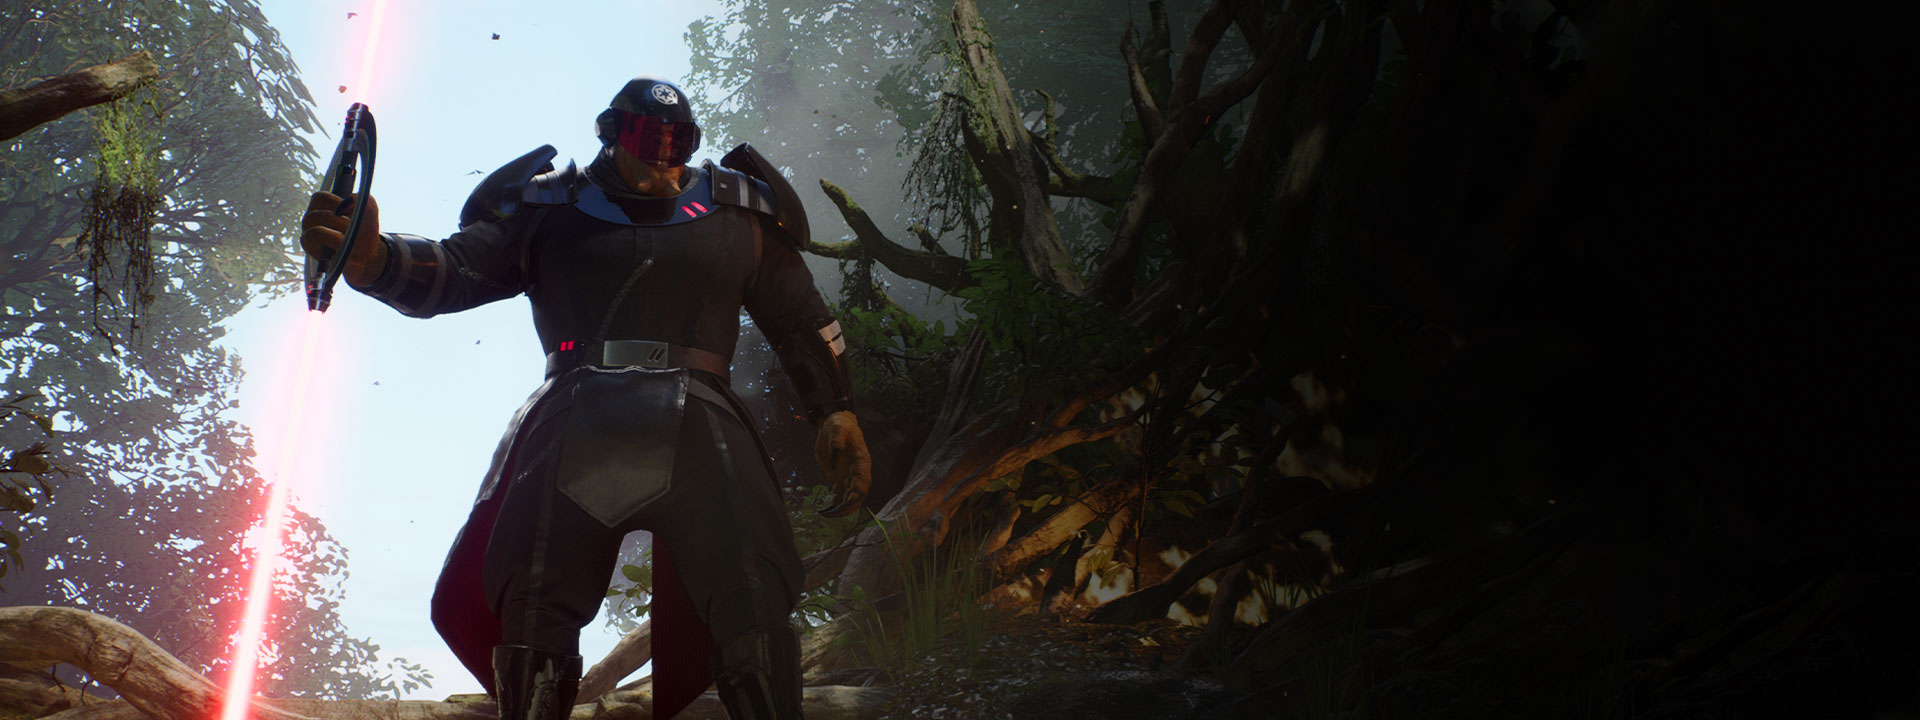 A large alien creature in Inquisitor armor holds a dual-sided lightsaber in a jungle